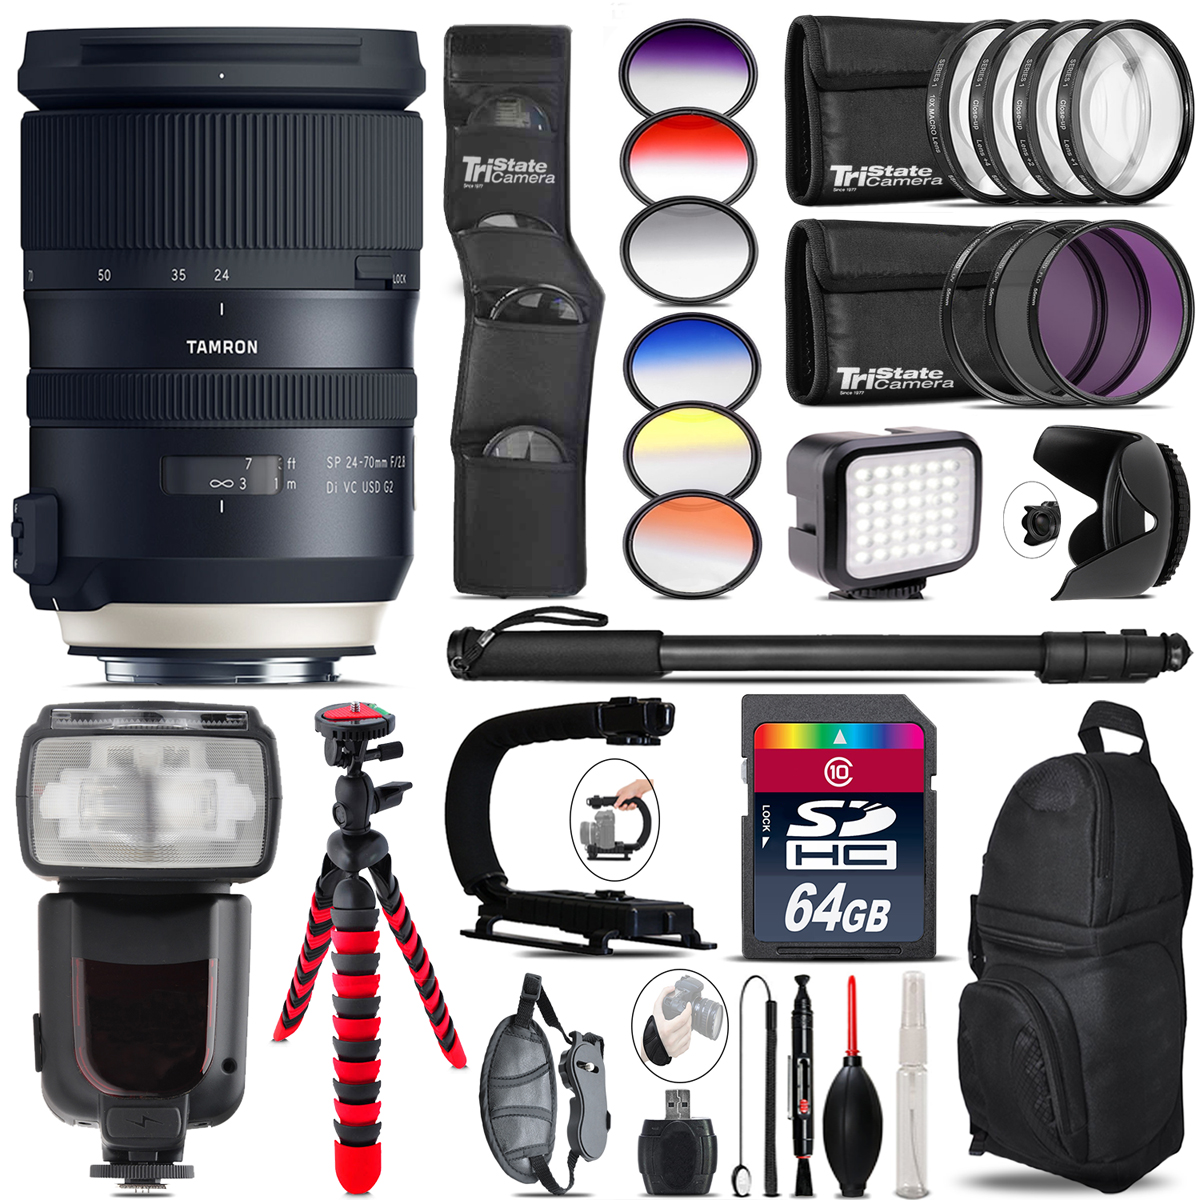 Tamron 24-70mm VC G2 for Canon + Pro Flash + LED Light - 64GB Accessory Bundle